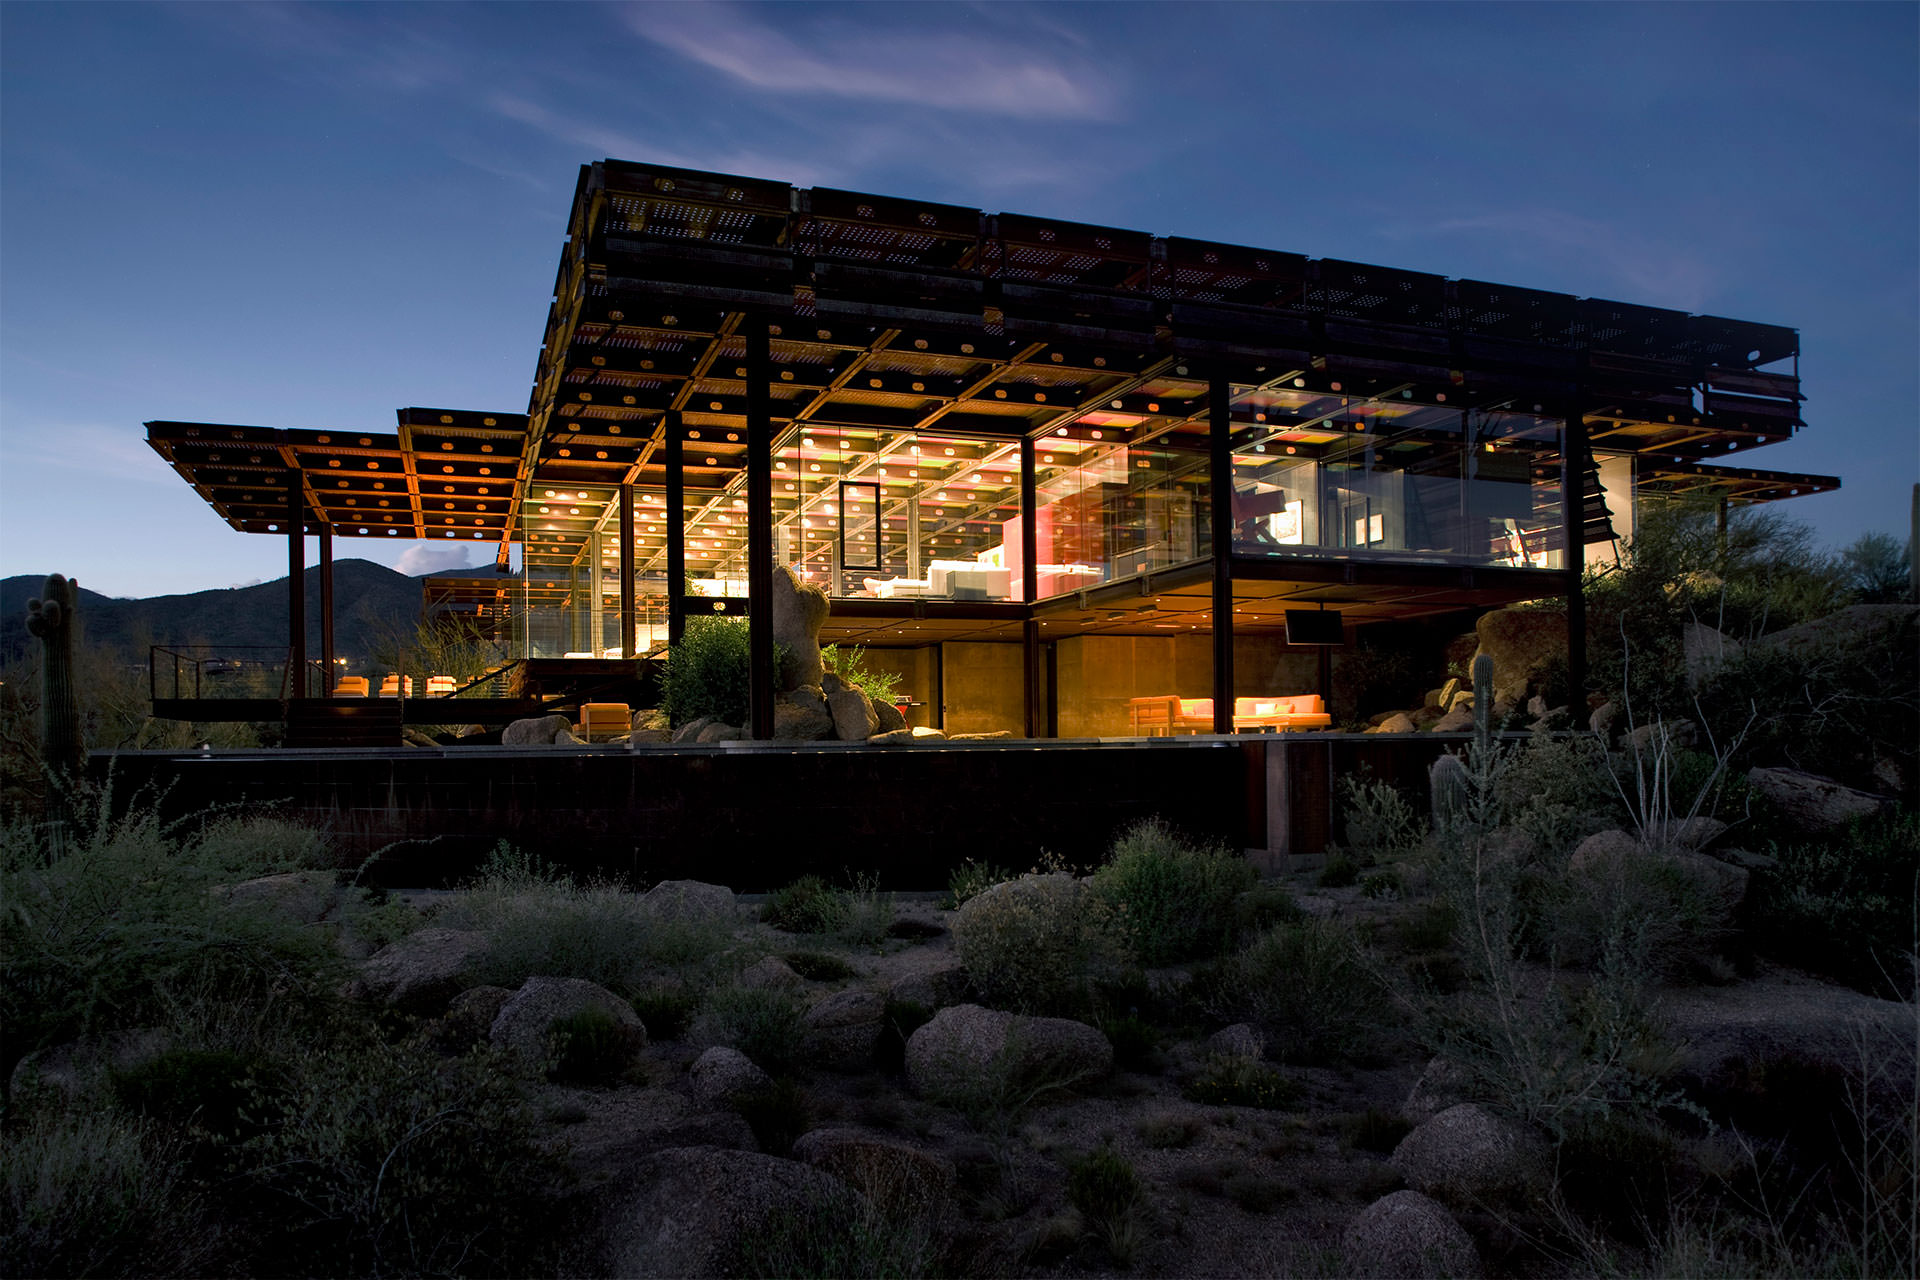 View of the house within the desert at night